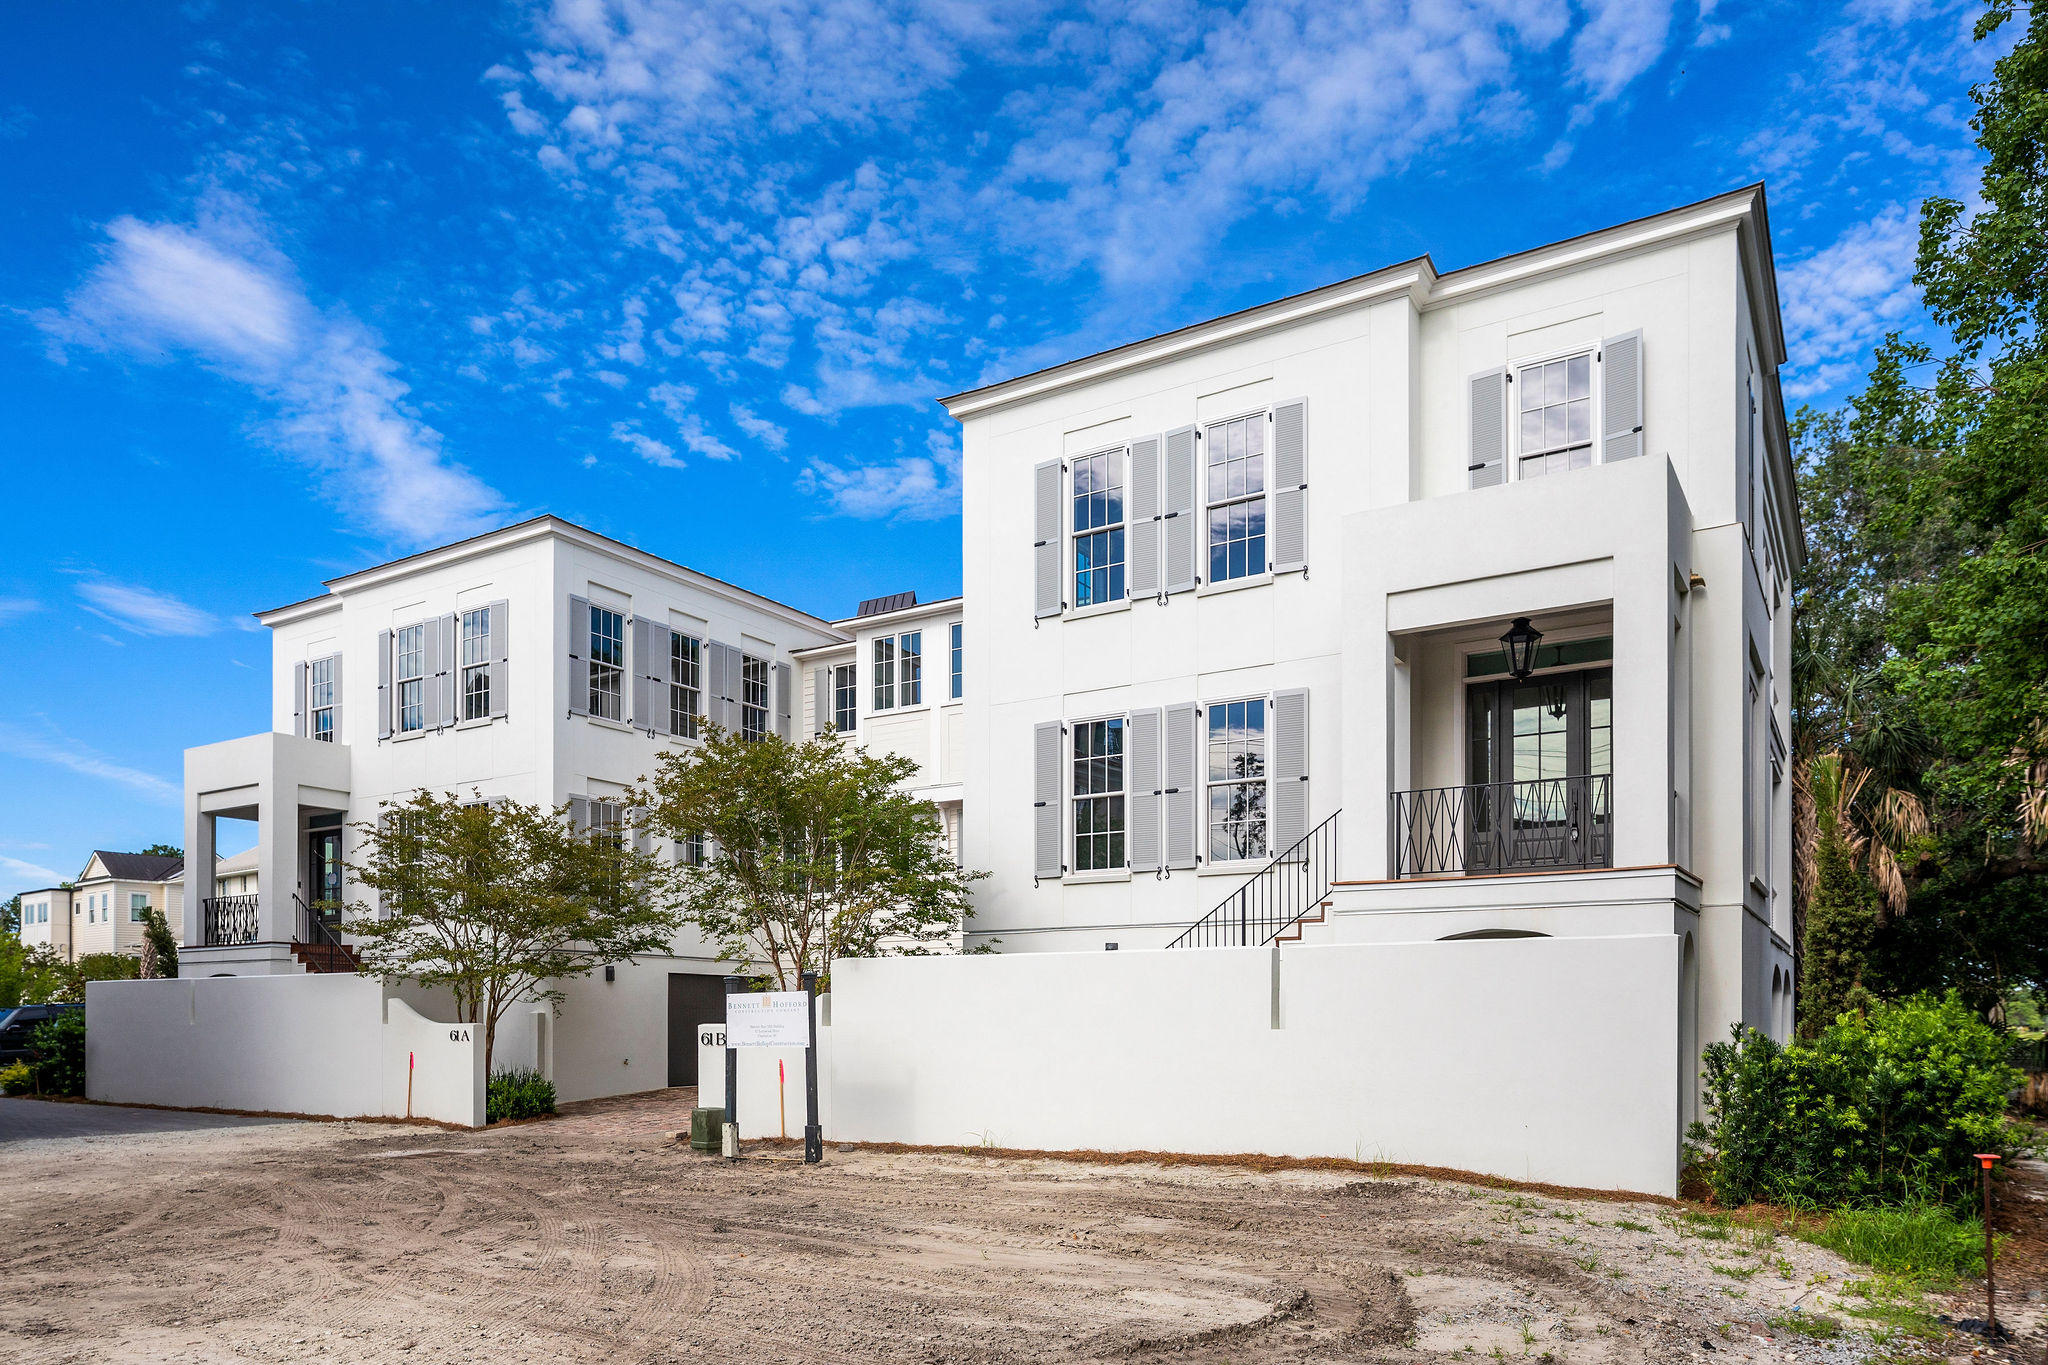 Harleston Village Condos For Sale - 61 B Barre, Charleston, SC - 0